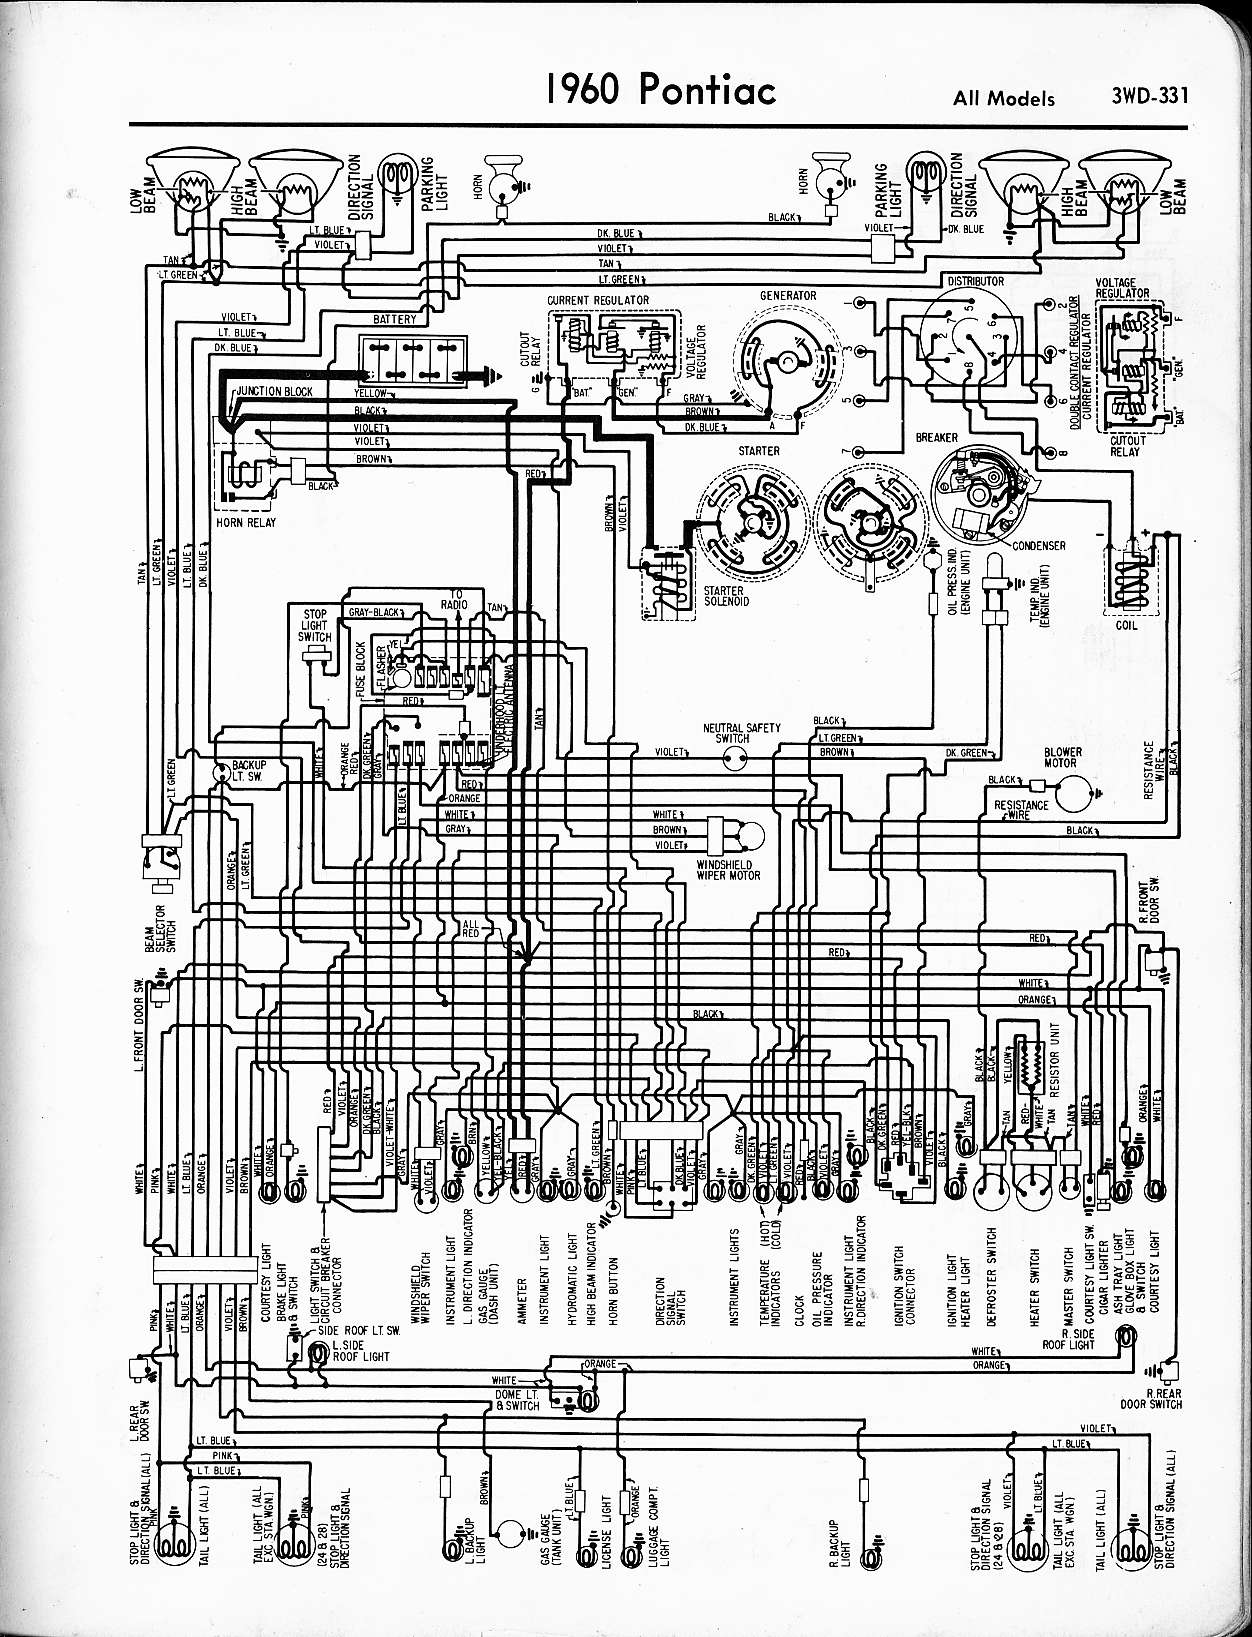 1974 Pontiac Firebird Wiring Diagram Worksheet And Amc Javelin Detailed Schematics Rh Antonartgallery Com Triumph Spitfire